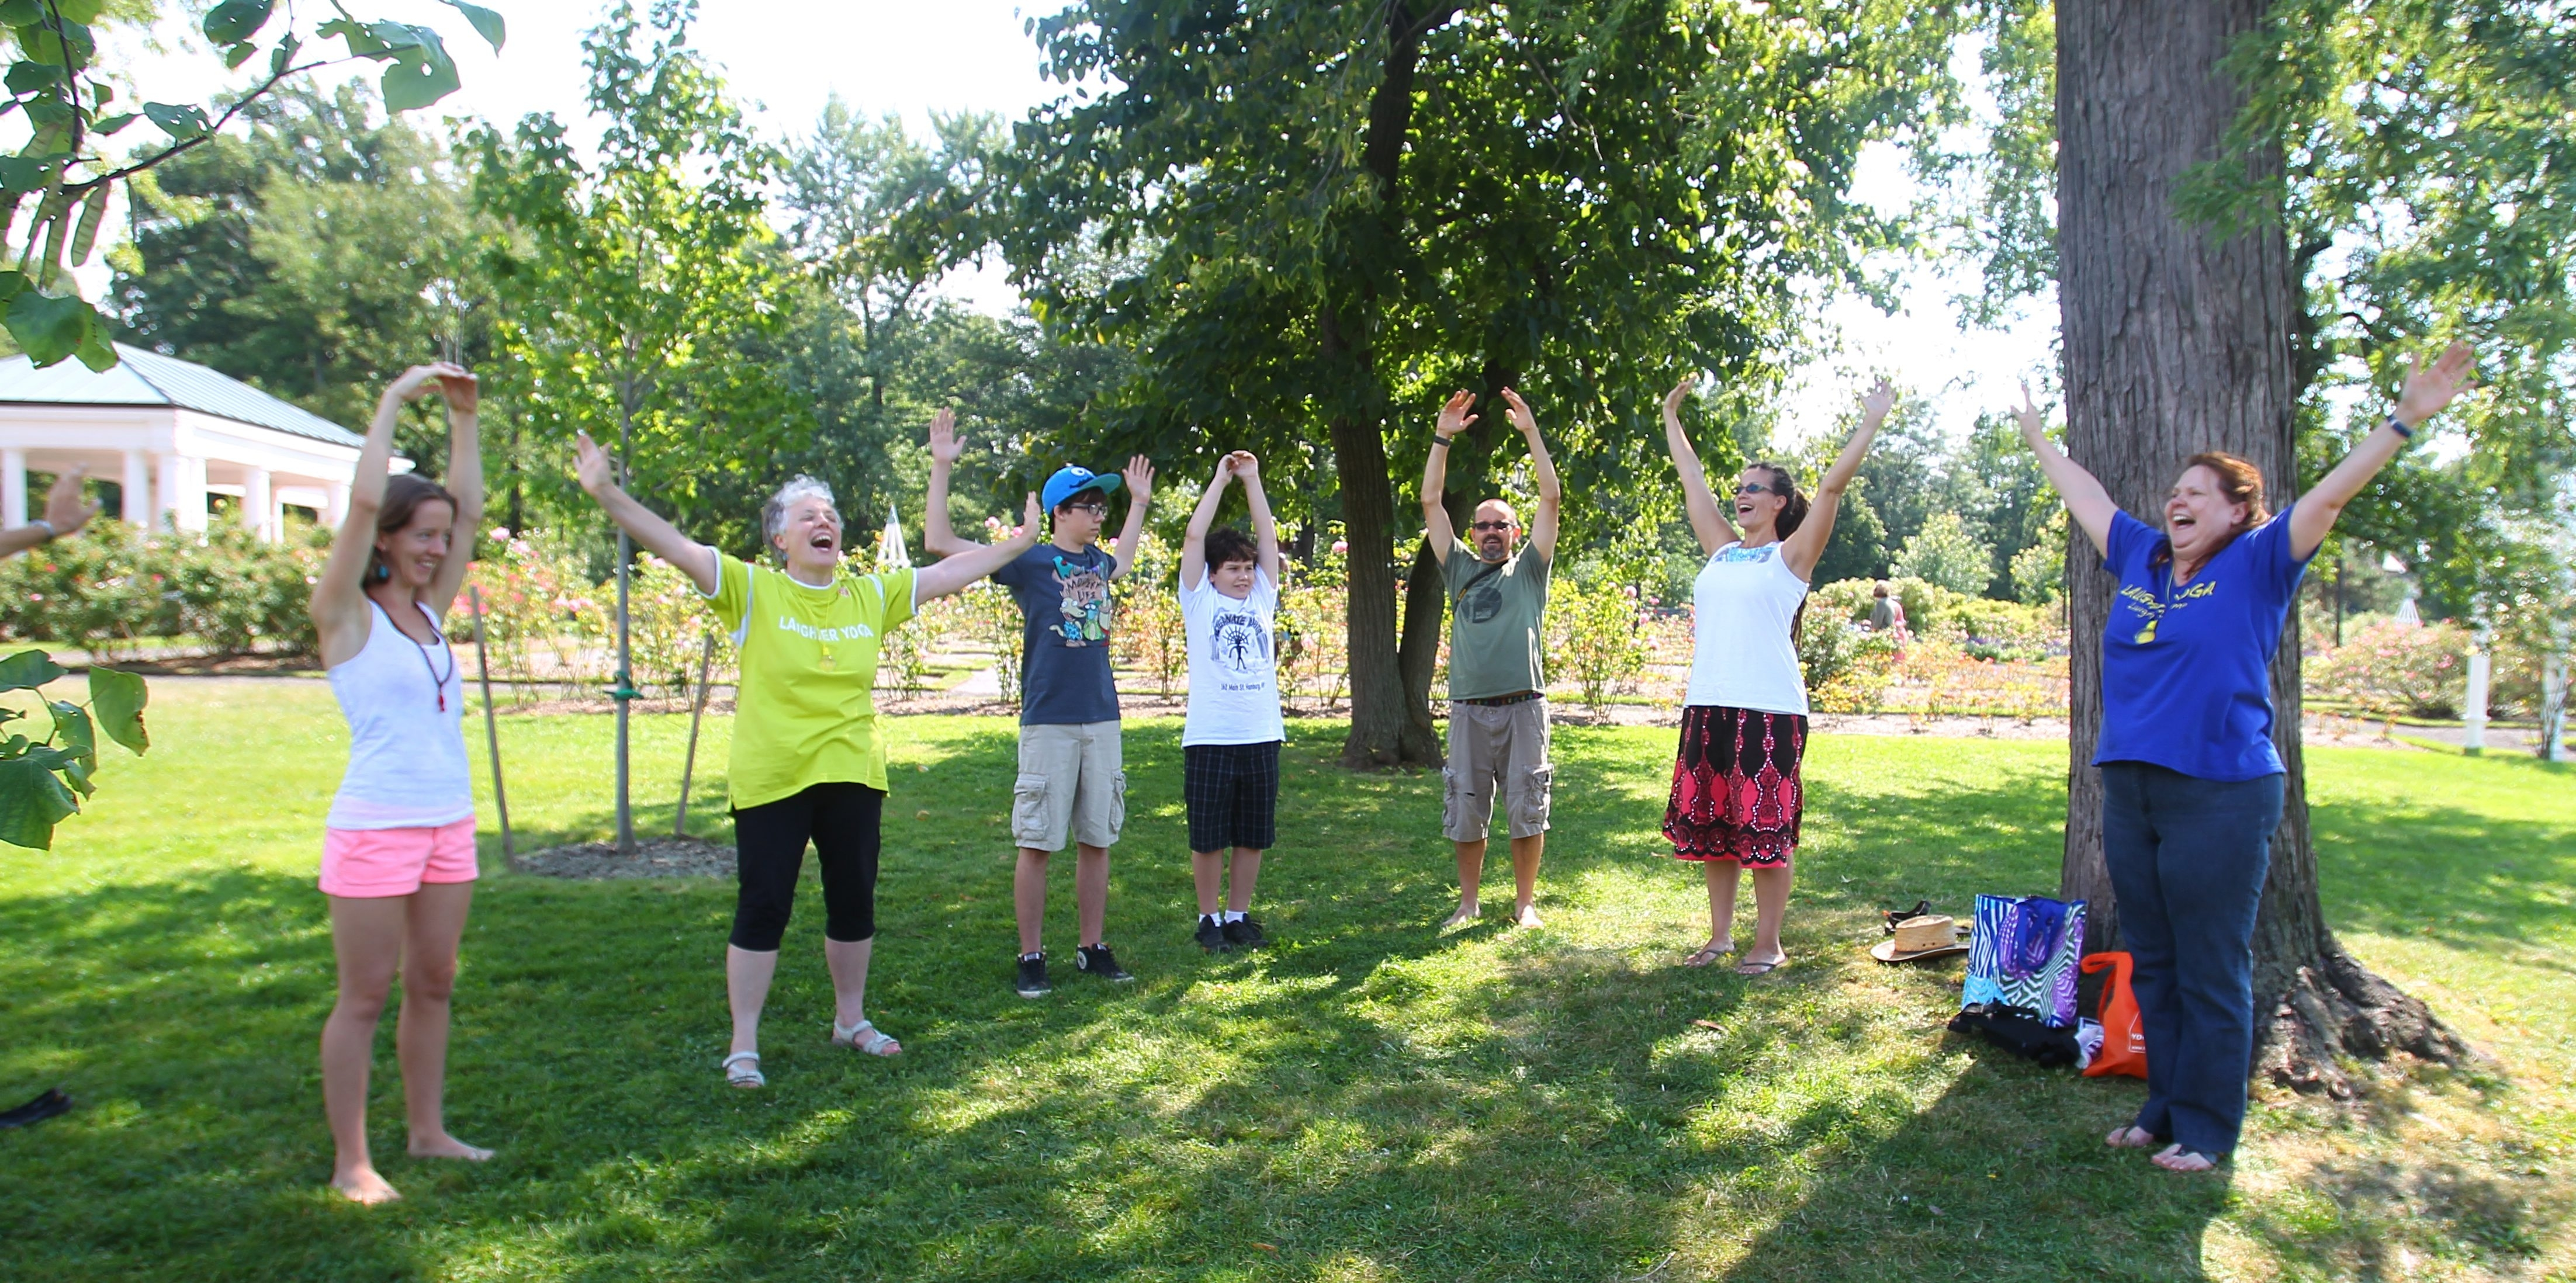 Participants try laughing yoga exercises at the Holistic Health Expo at Delaware Park's Marcy Casino on Sunday.  Practitioners say laughter yoga energizes them and awakens in them a sense of childlike joy.